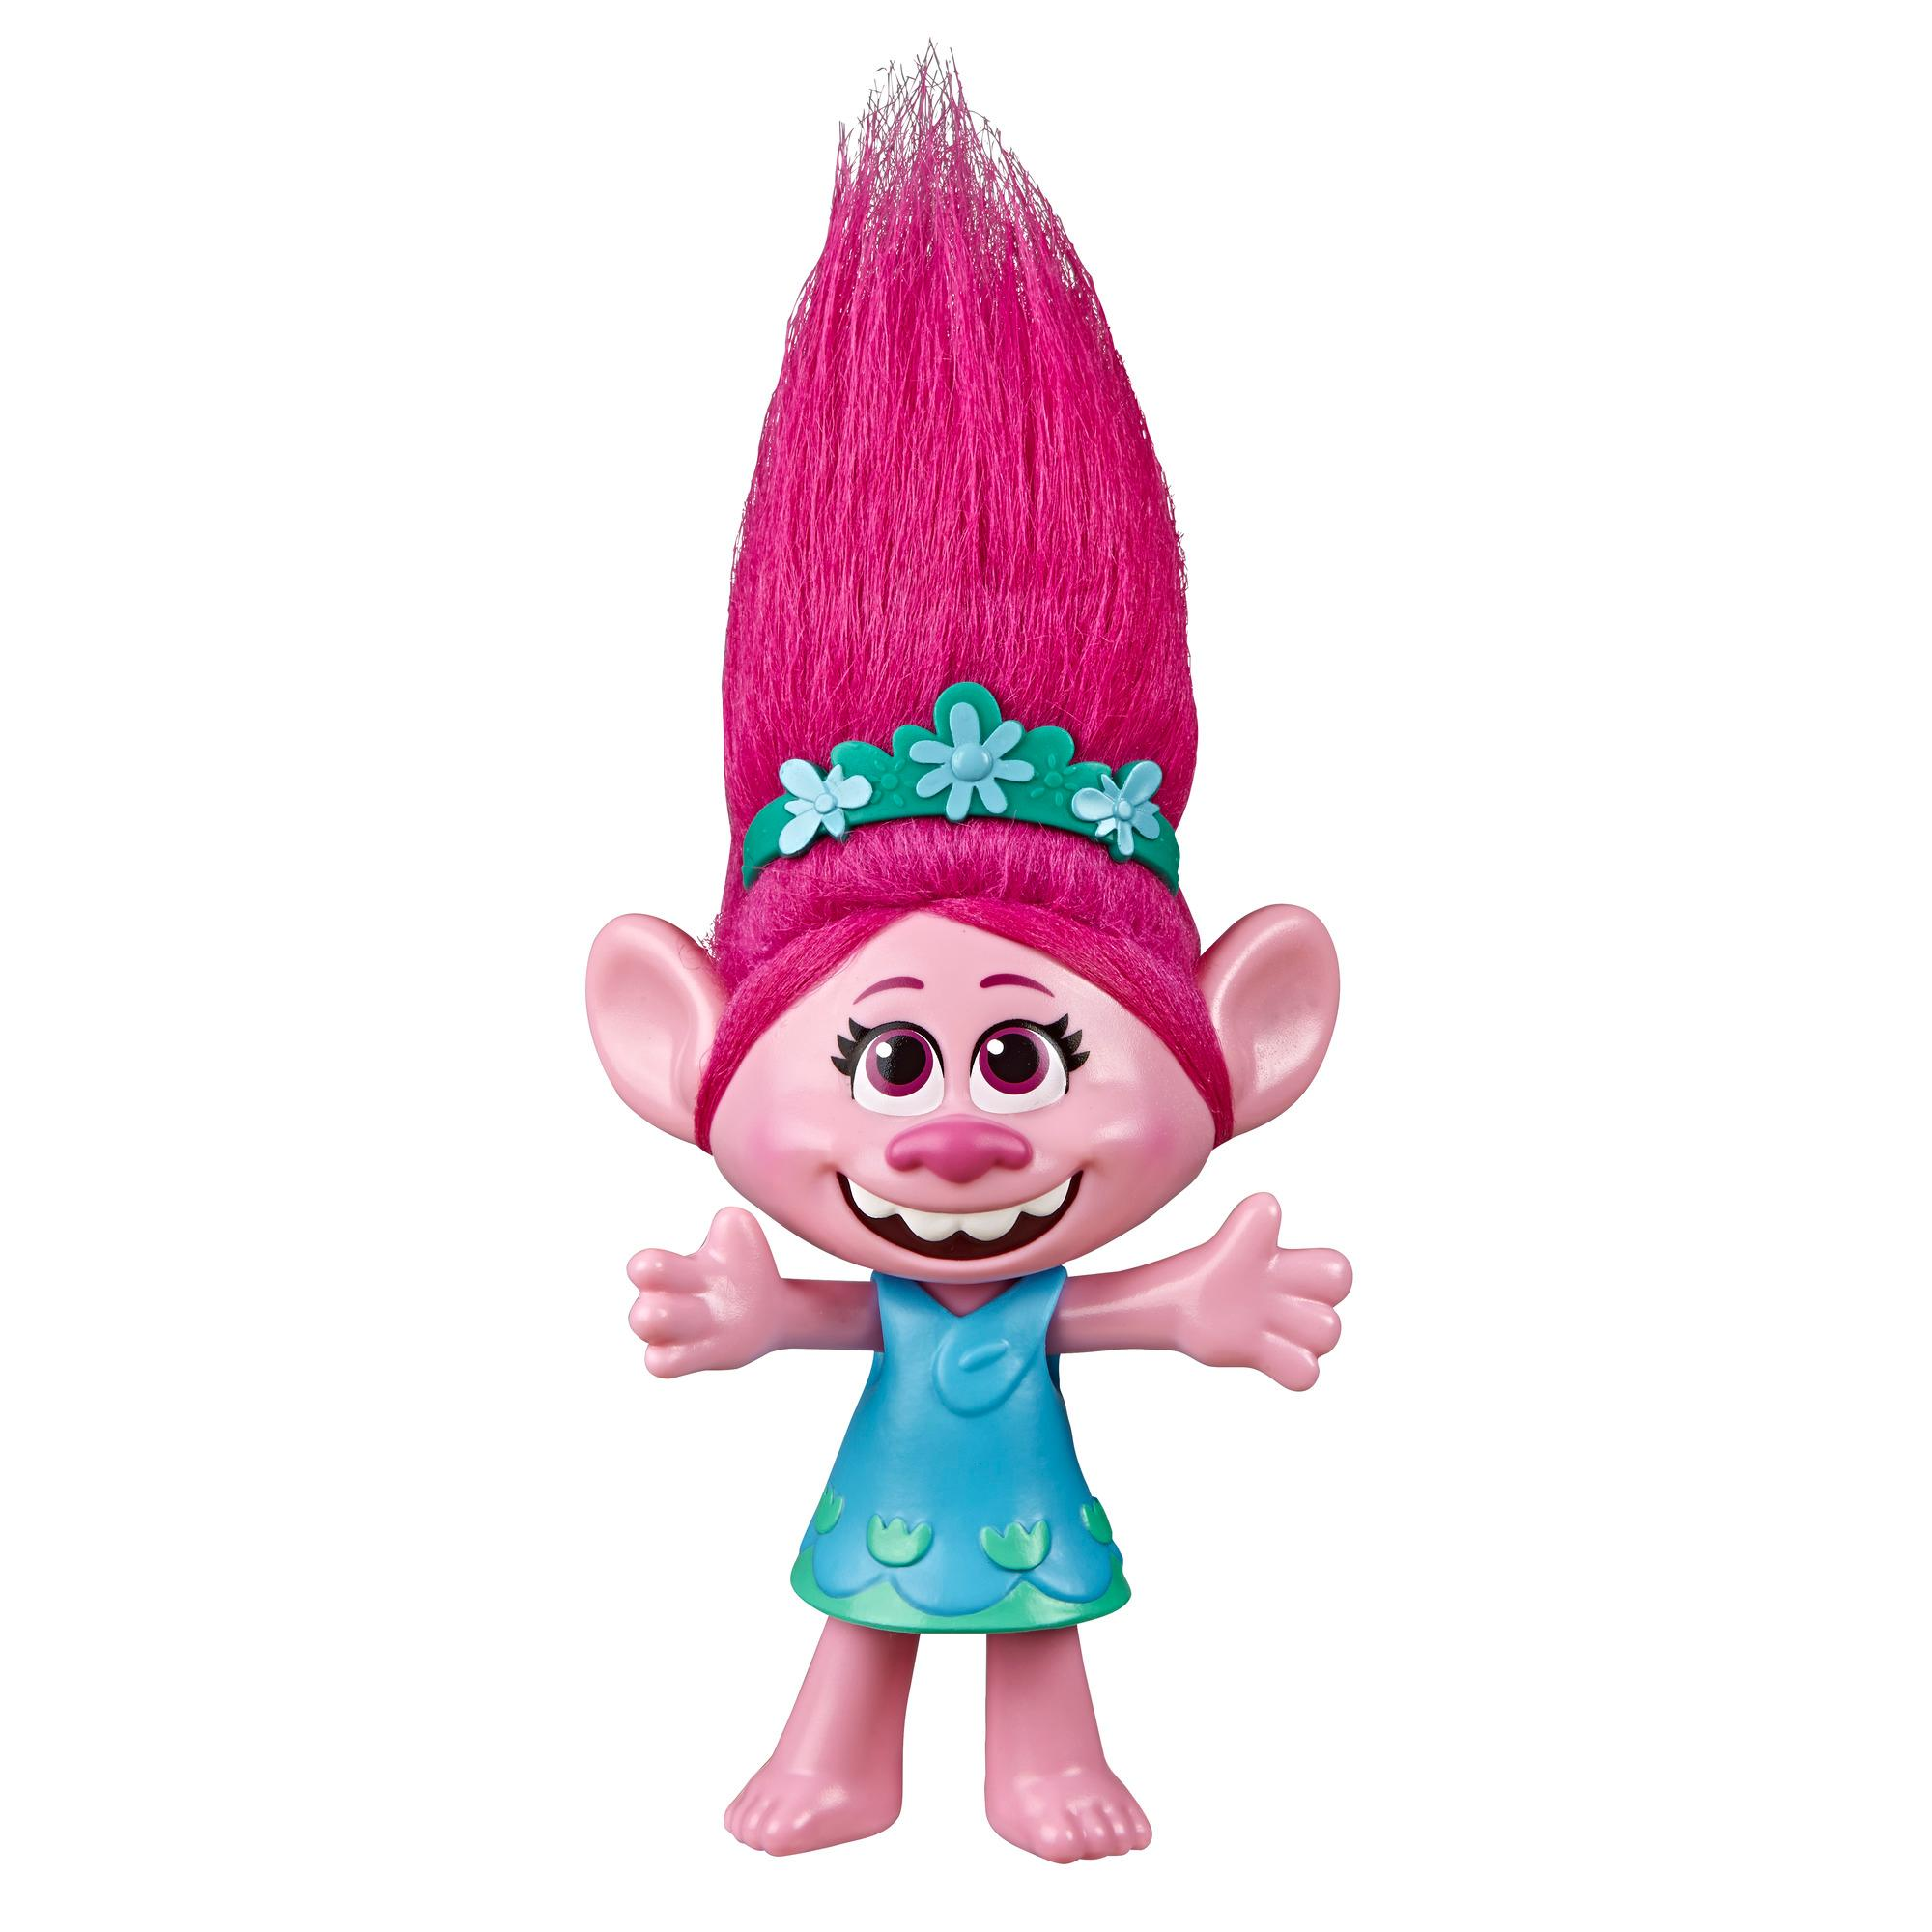 DreamWorks Trolls Pop Music Poppy Singing Doll Toy, Sings Trolls Just Want to Have Fun from DreamWorksTrolls World Tour